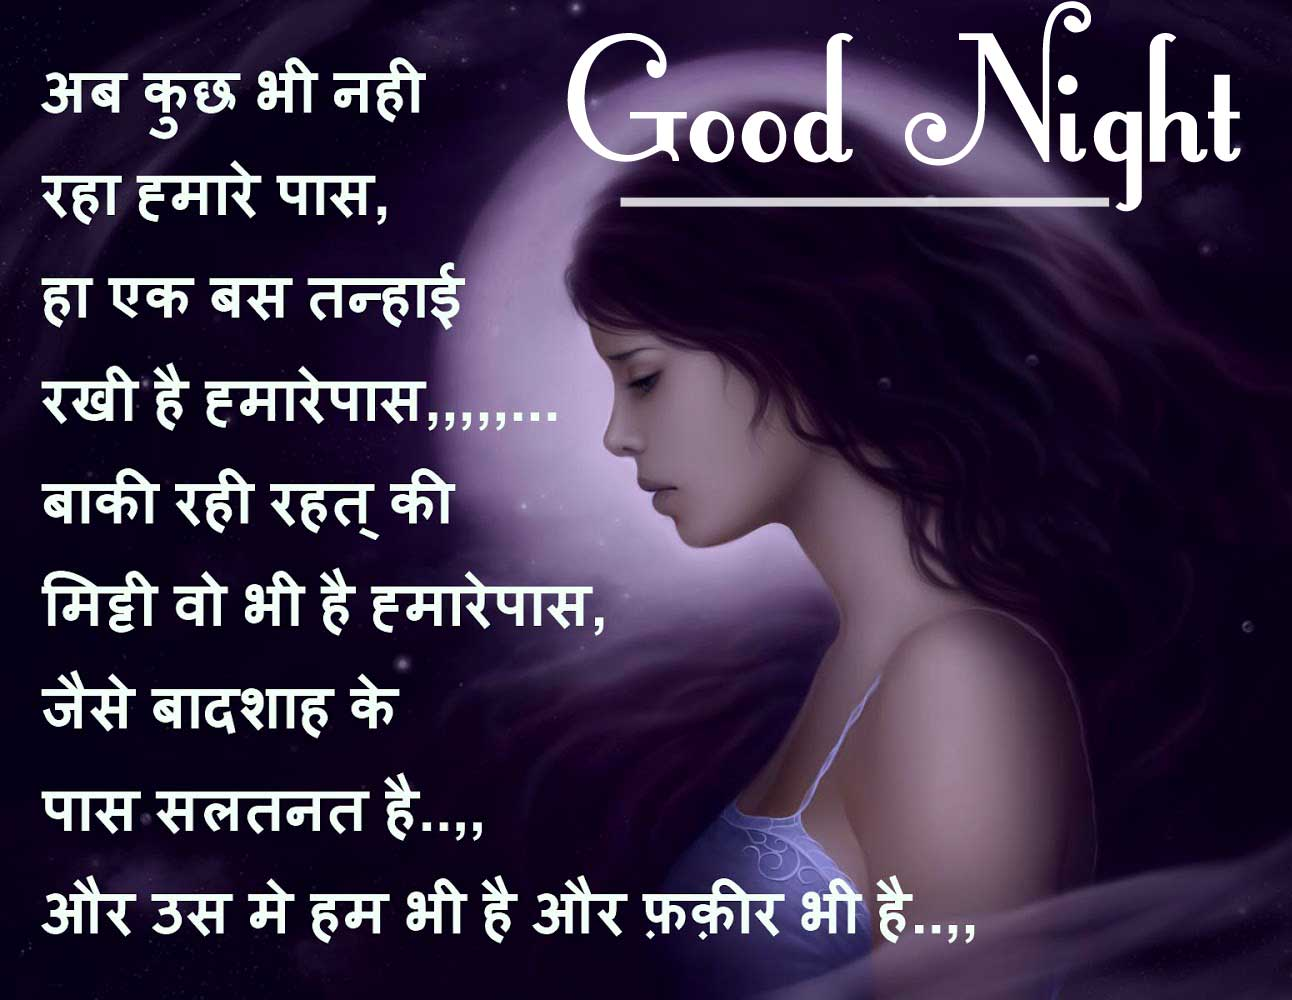 New Best Good Night Images With Hindi Shayari Pics Download